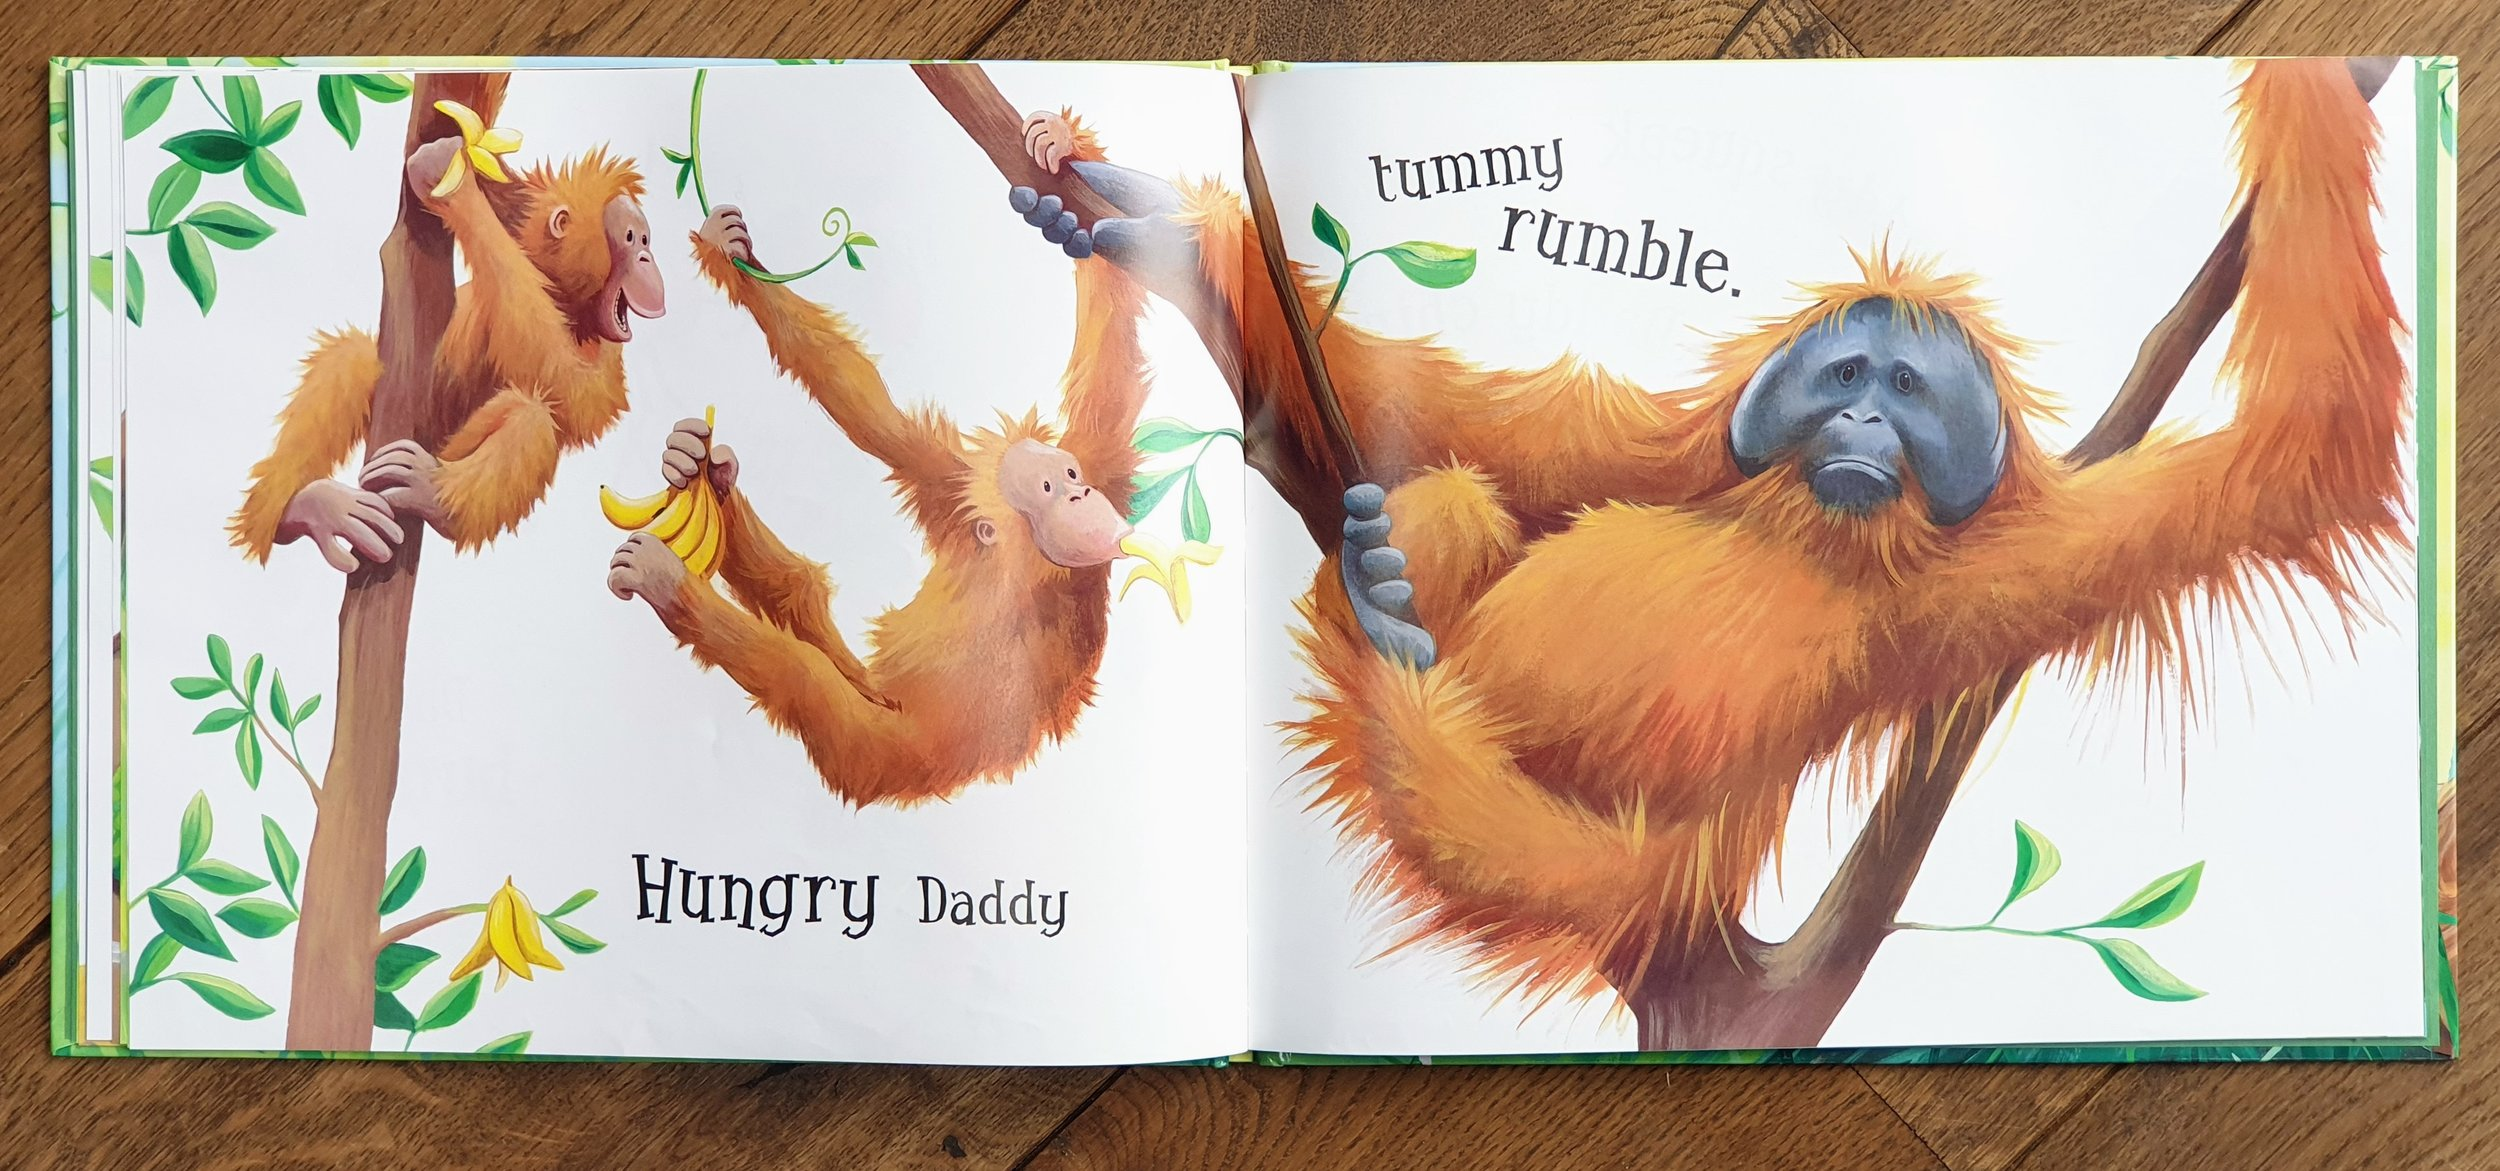 From  Daddy Hug  (HarperCollins) © 2008 by Tim Warnes and Jane Chapman. Used by permission